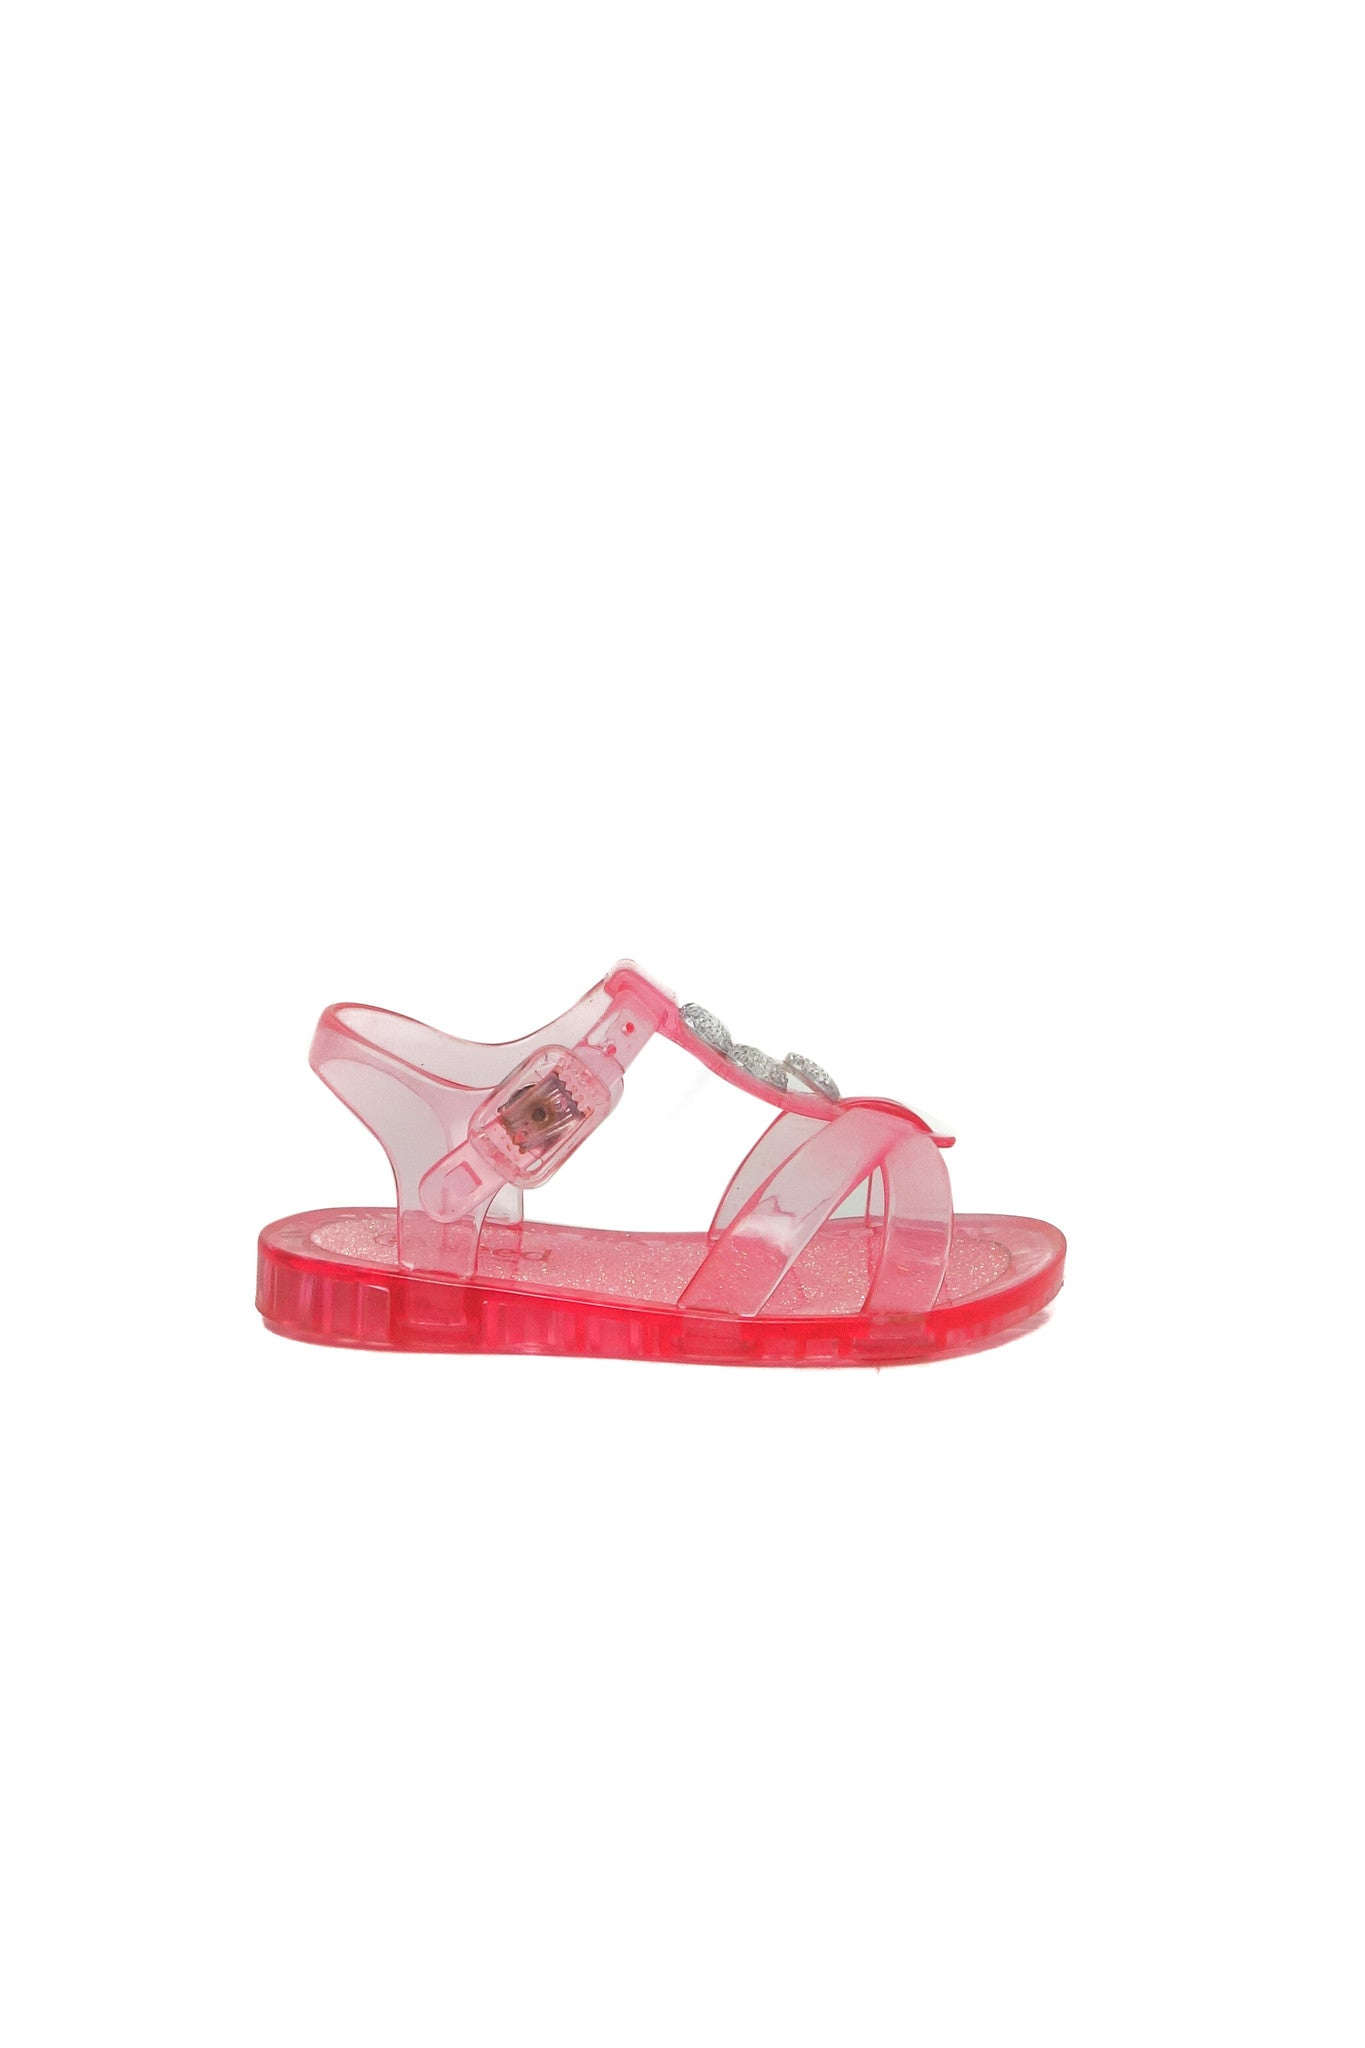 10003139 Seed Kids~Sandals 3T (EU 25) at Retykle